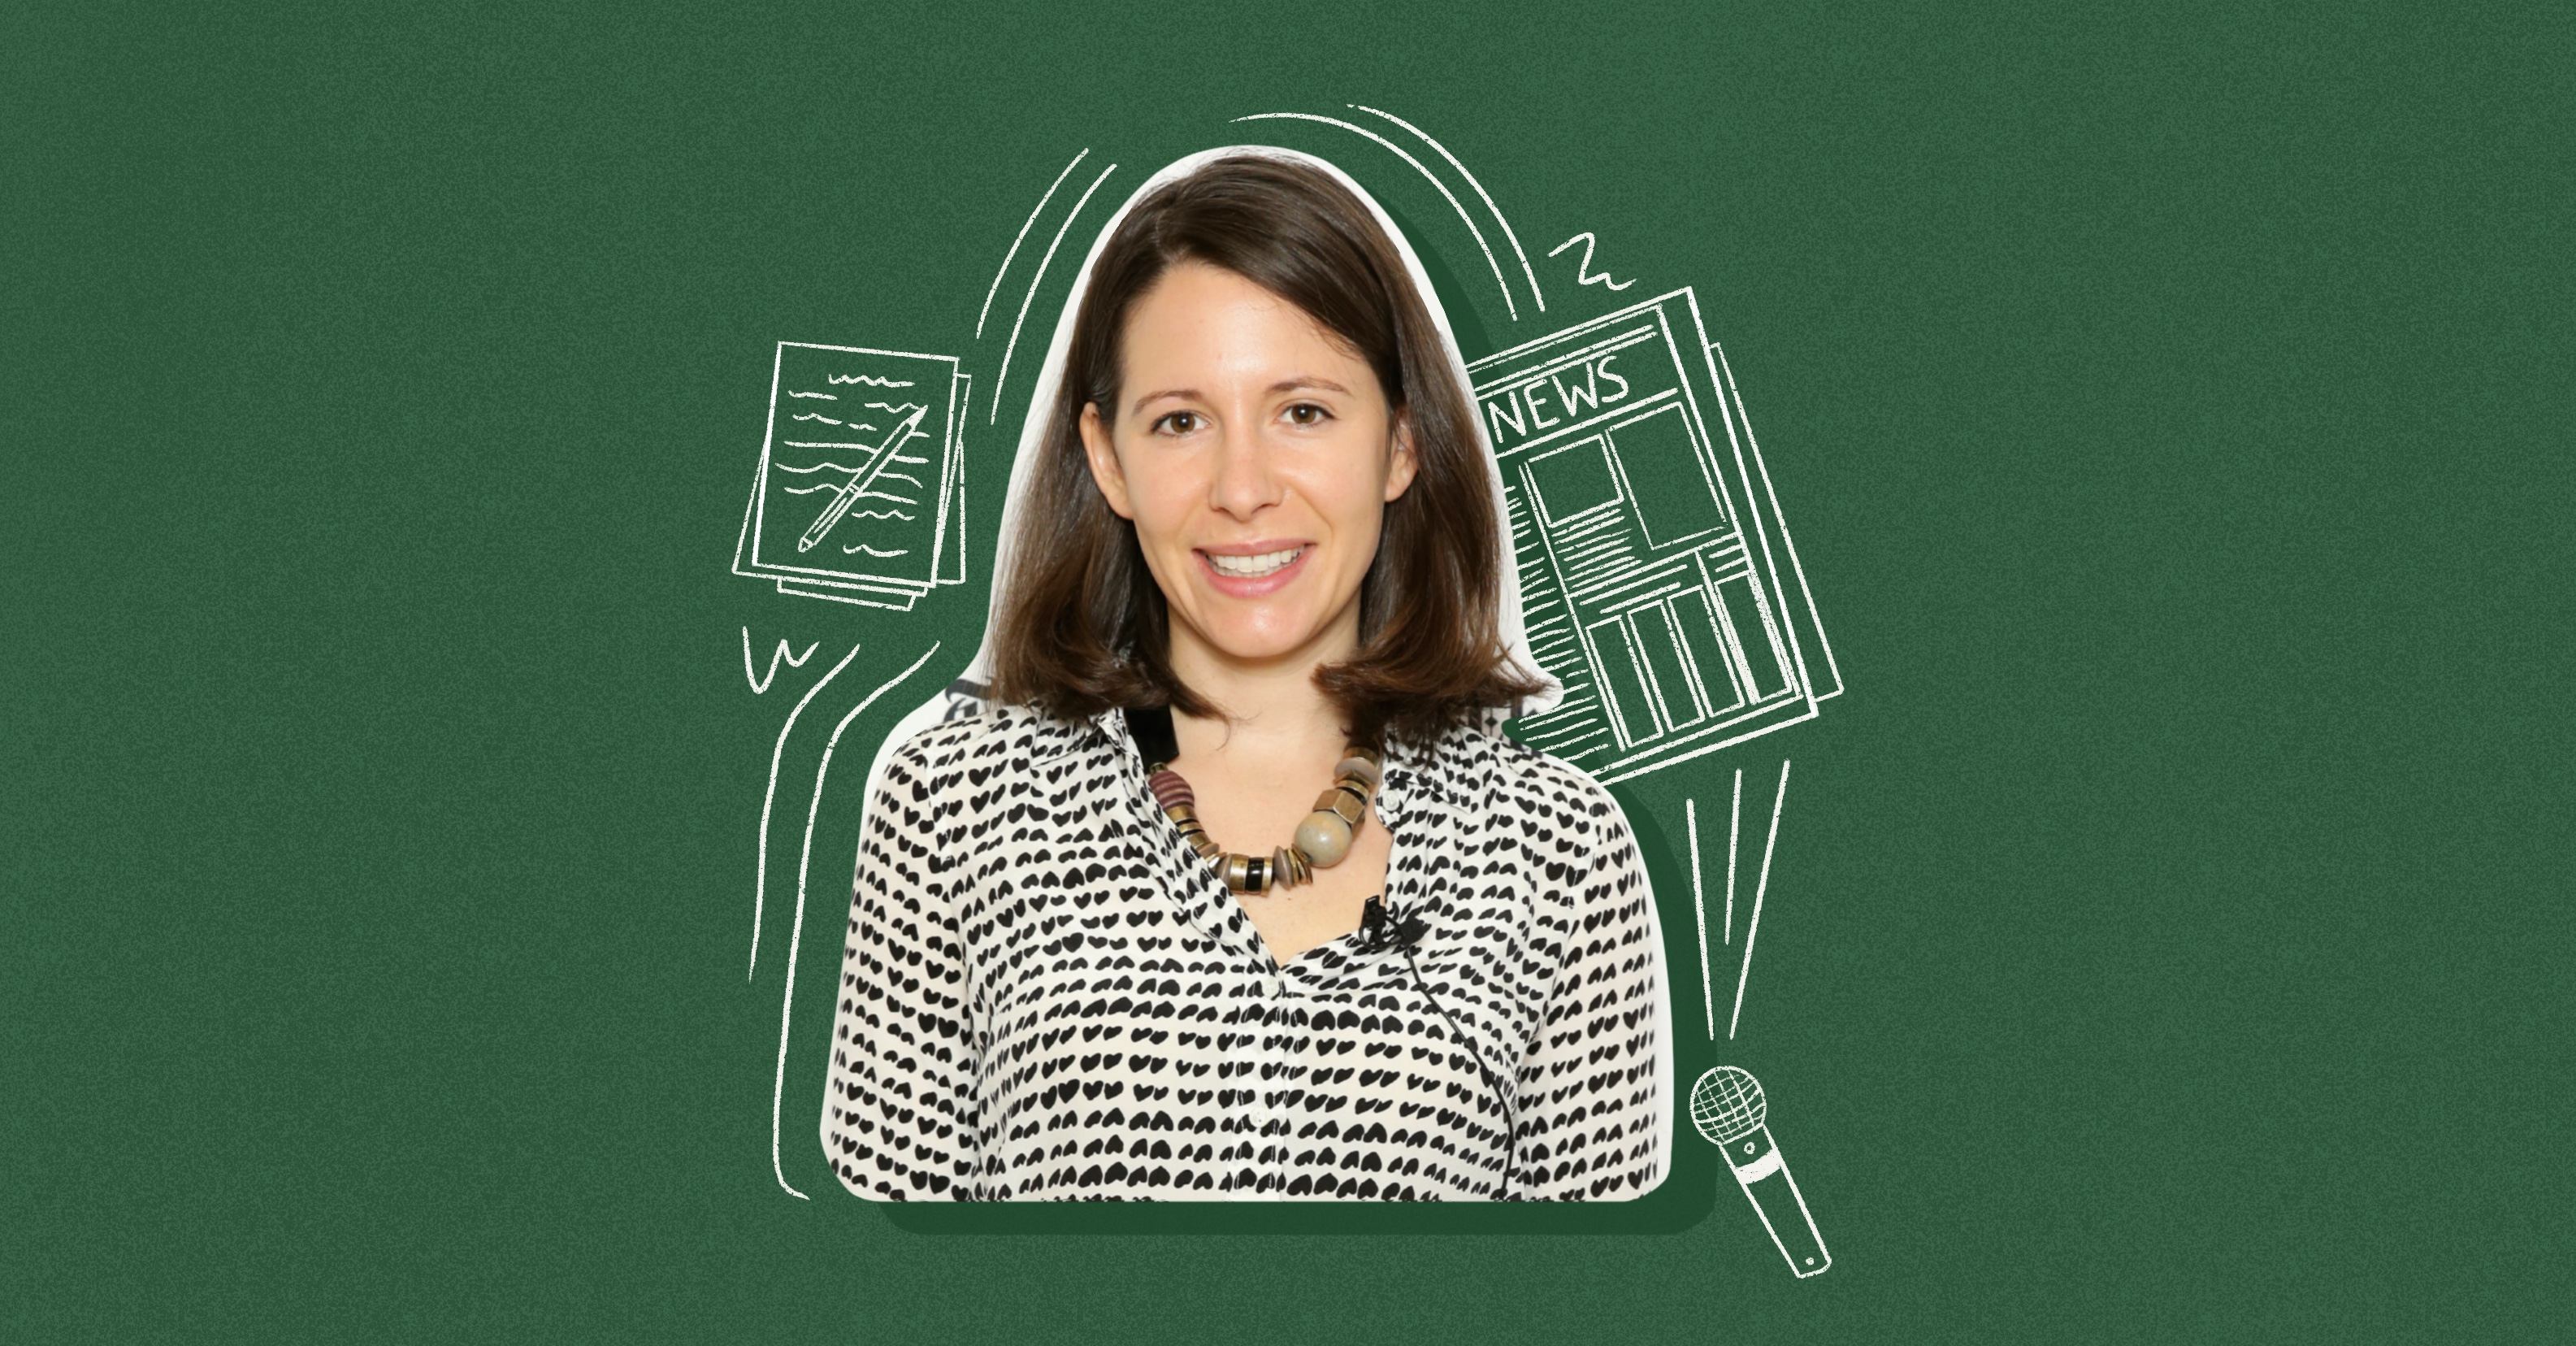 Photo illustration of Claire Cain Miller on a green background